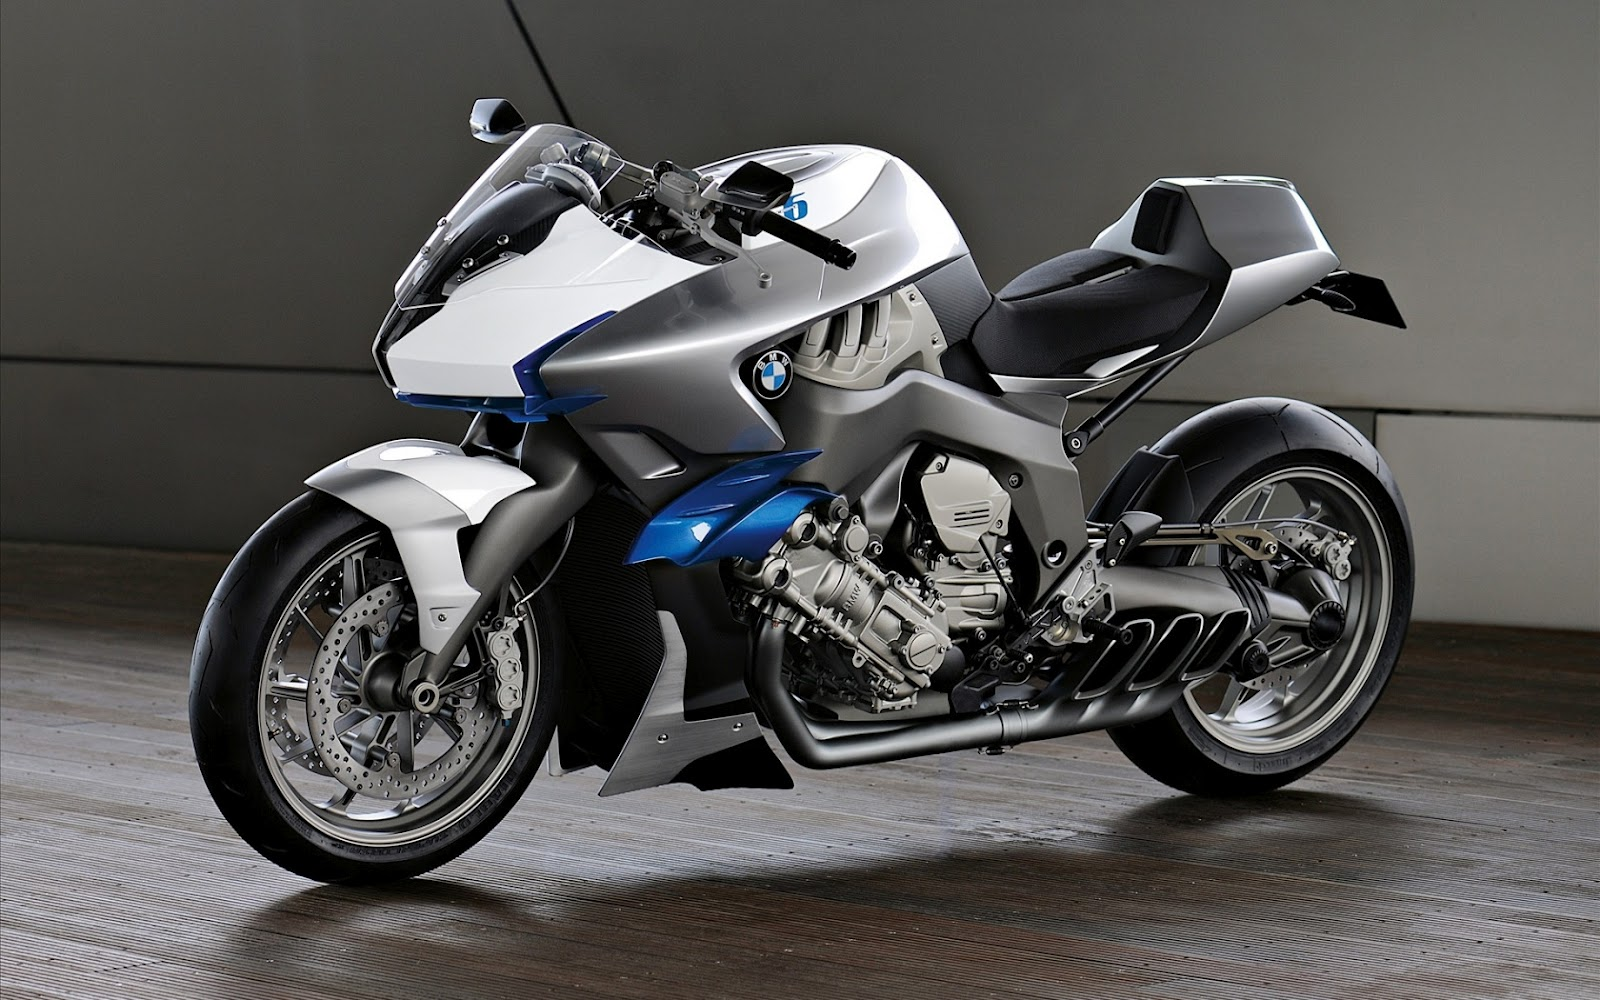 sports bike images: ~ sports car, racing car, luxury sports cars